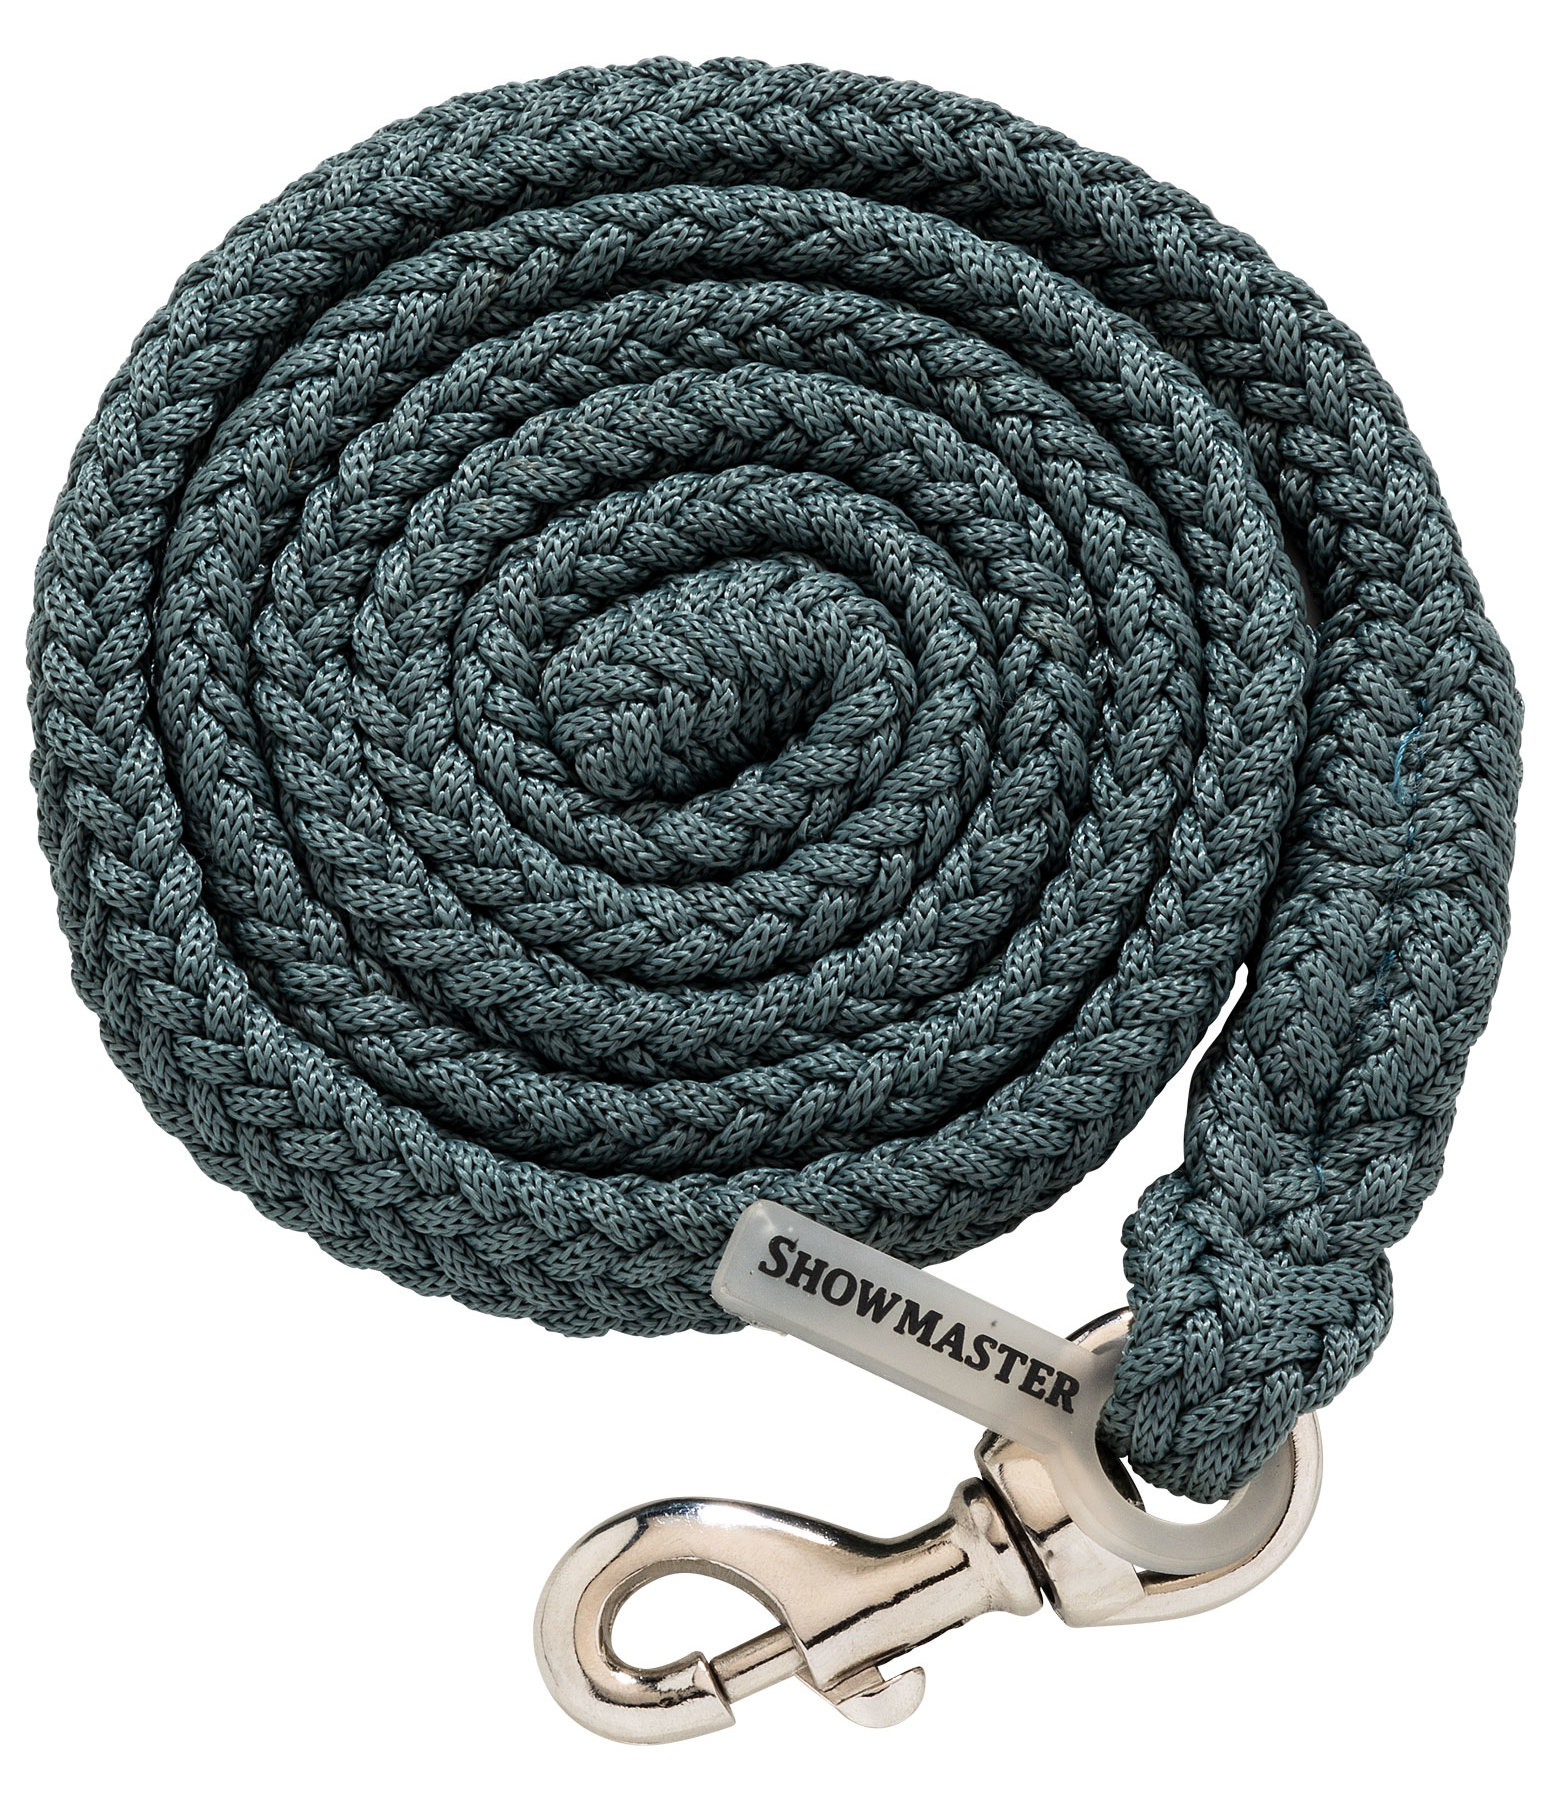 Foal and Shetland Lead Rope Durable with Snap Hook